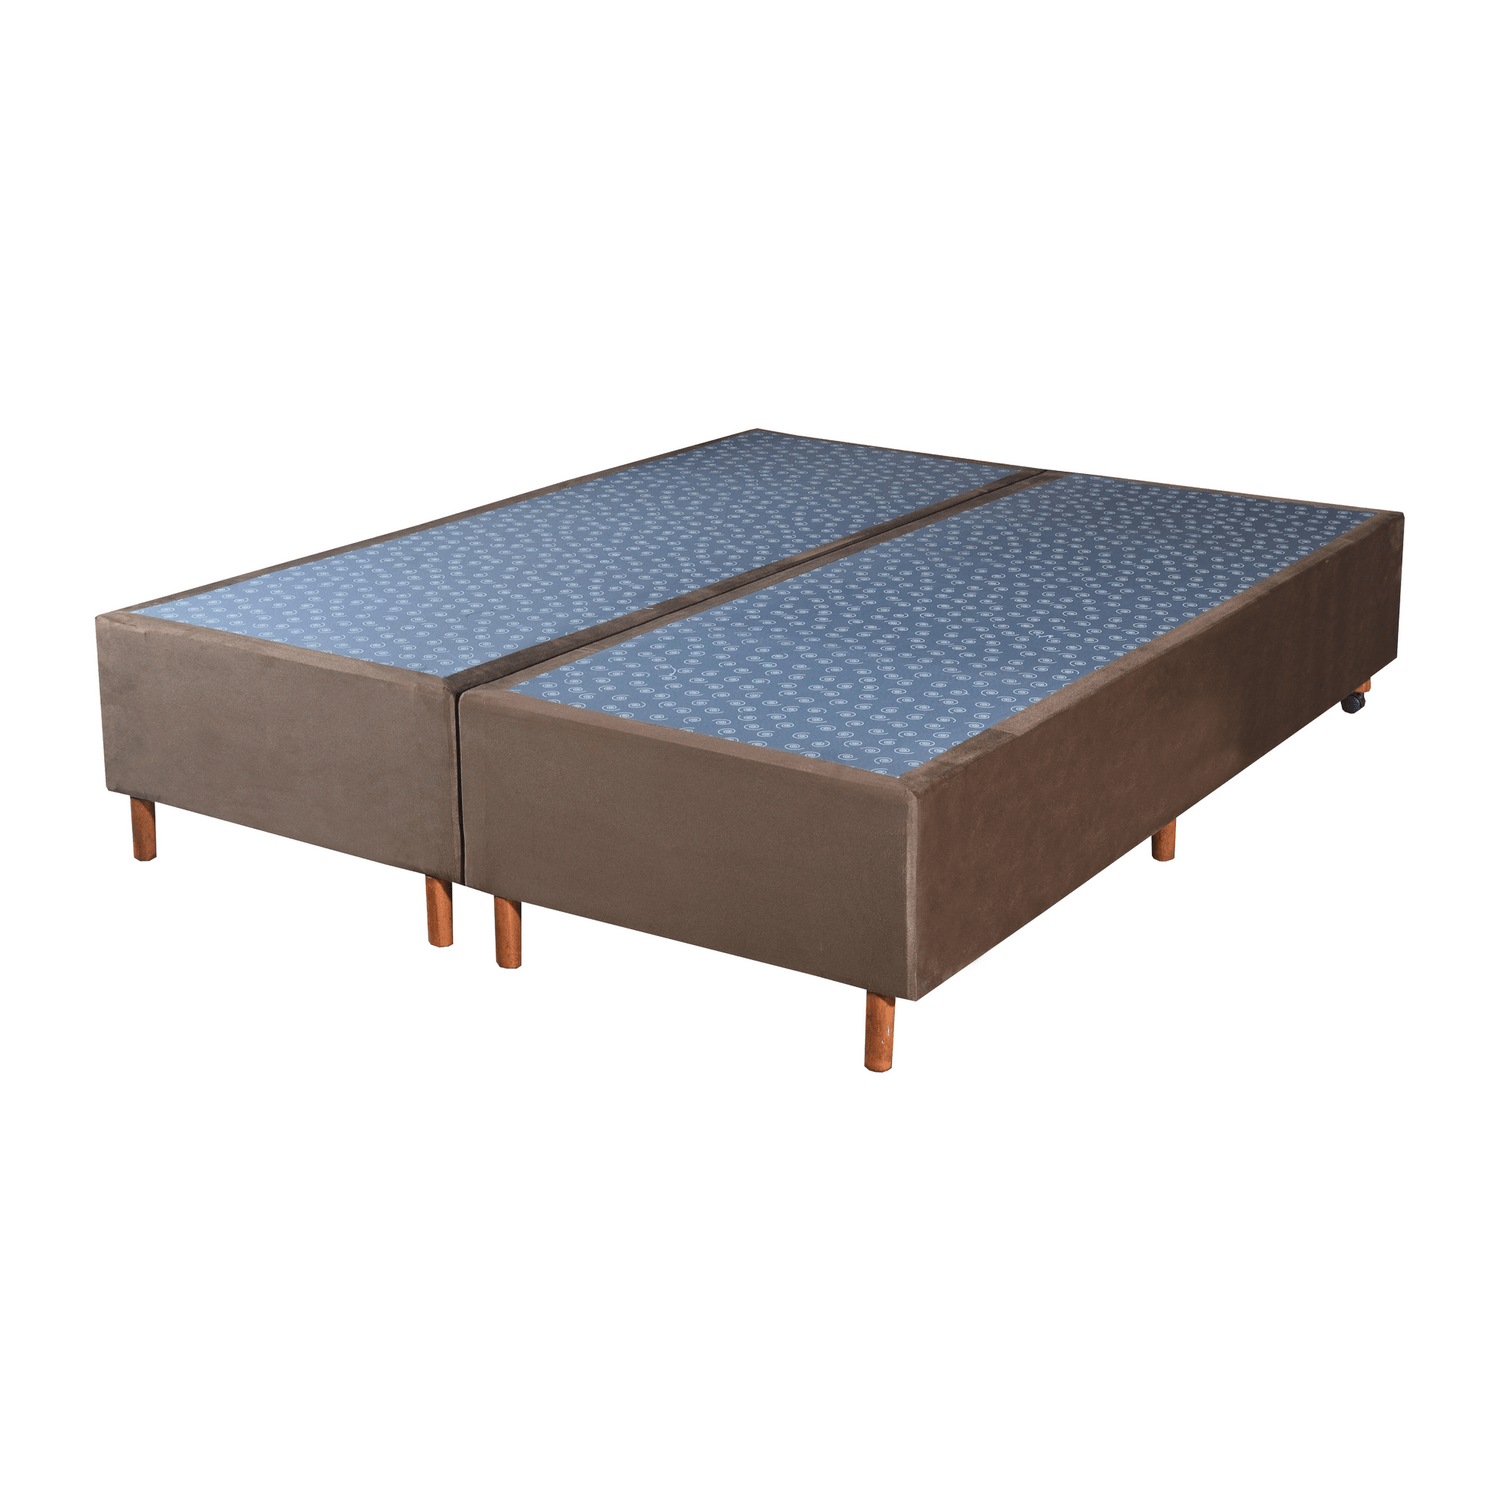 Cama Box Base Queen Veludo Marron 158x198x30